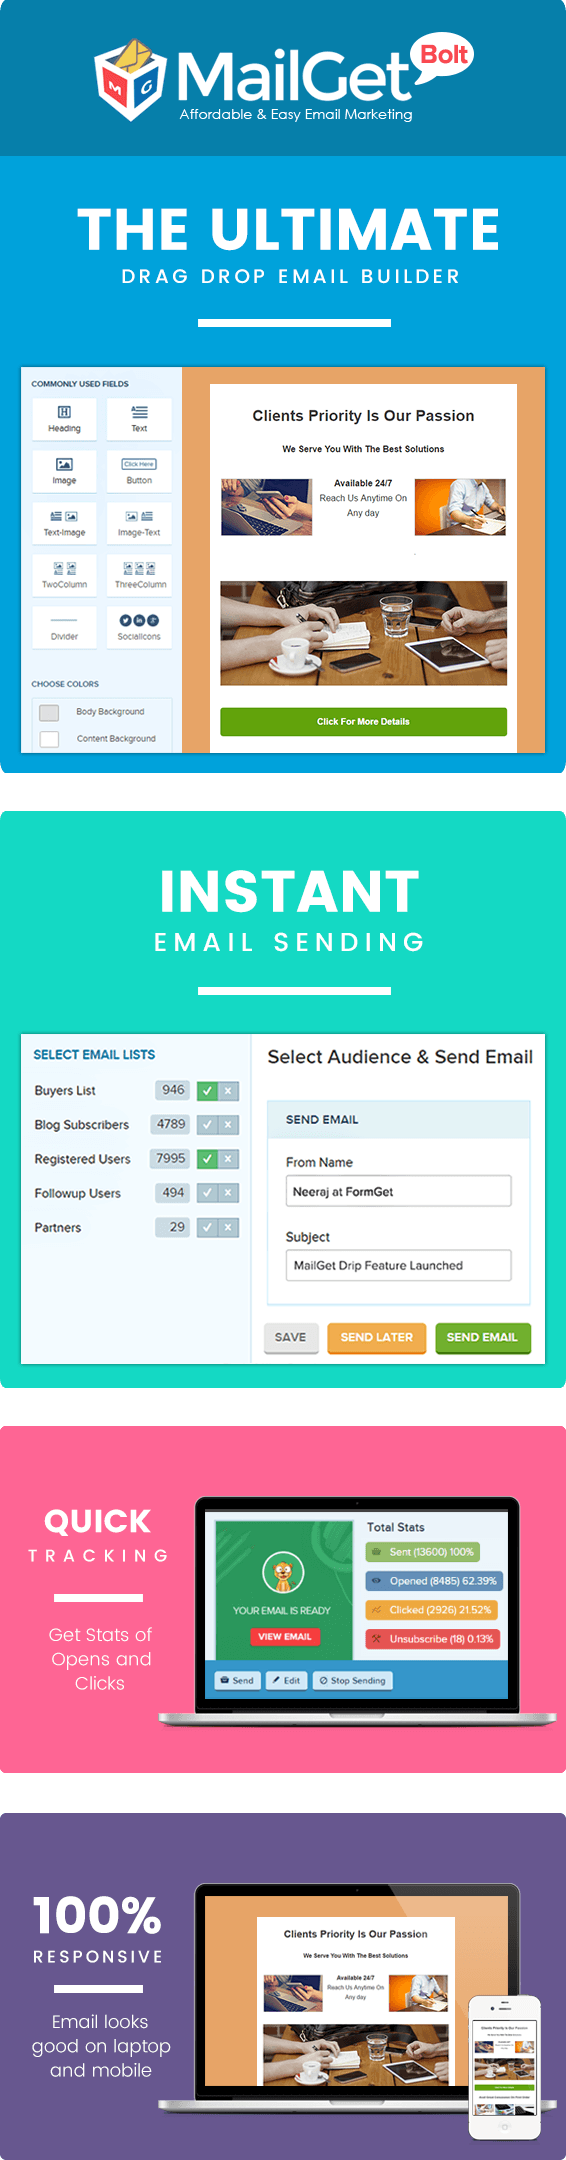 Email Marketing For Small Business Sales